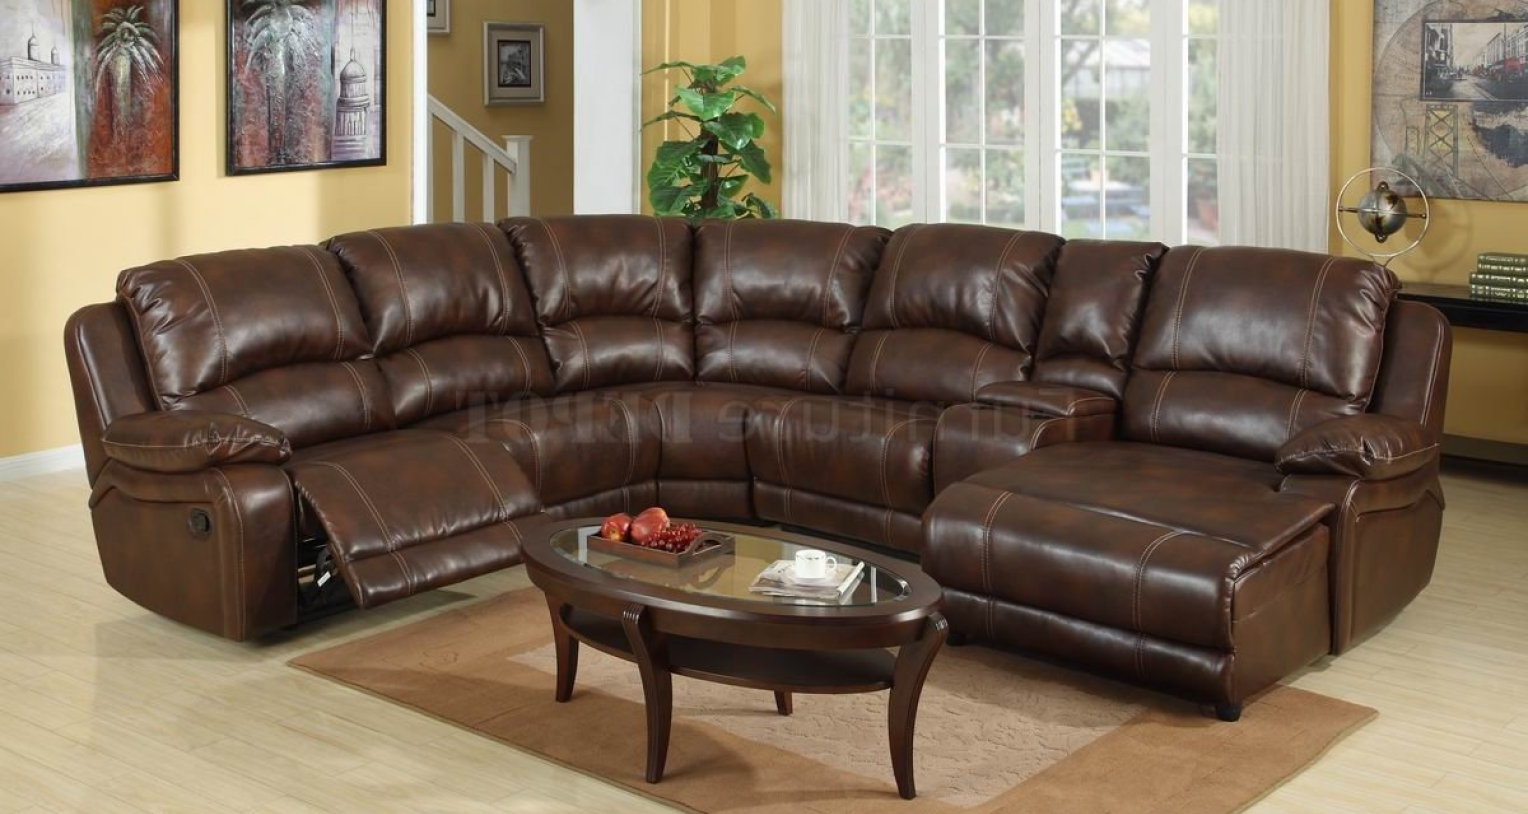 Favorite Cincinnati Sectional Sofas Regarding Stylish Sectional Sofas Cincinnati – Mediasupload (View 6 of 15)